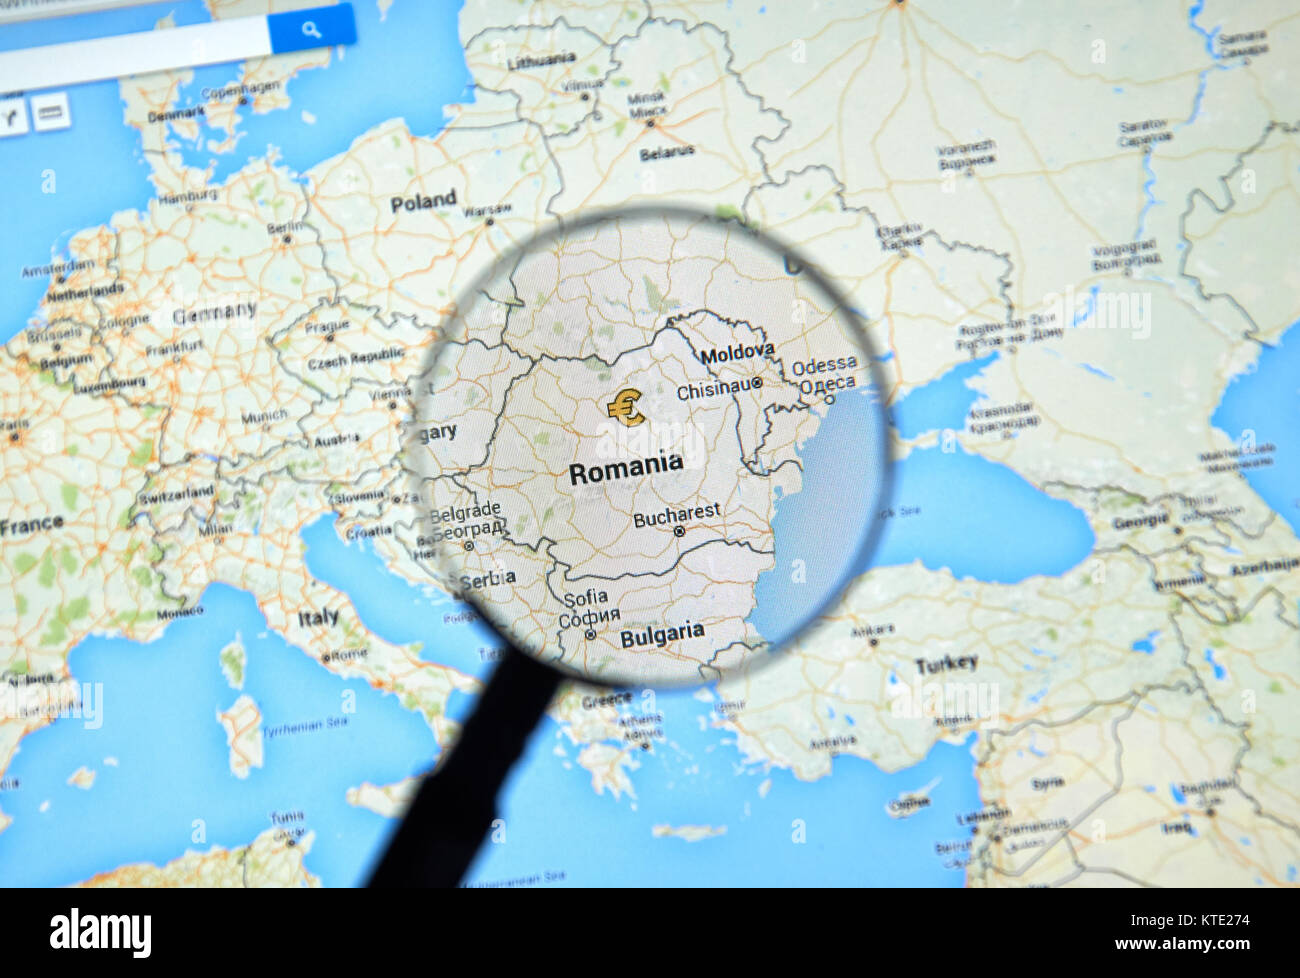 Bucharest Romania City Map Stock Photos Bucharest Romania City